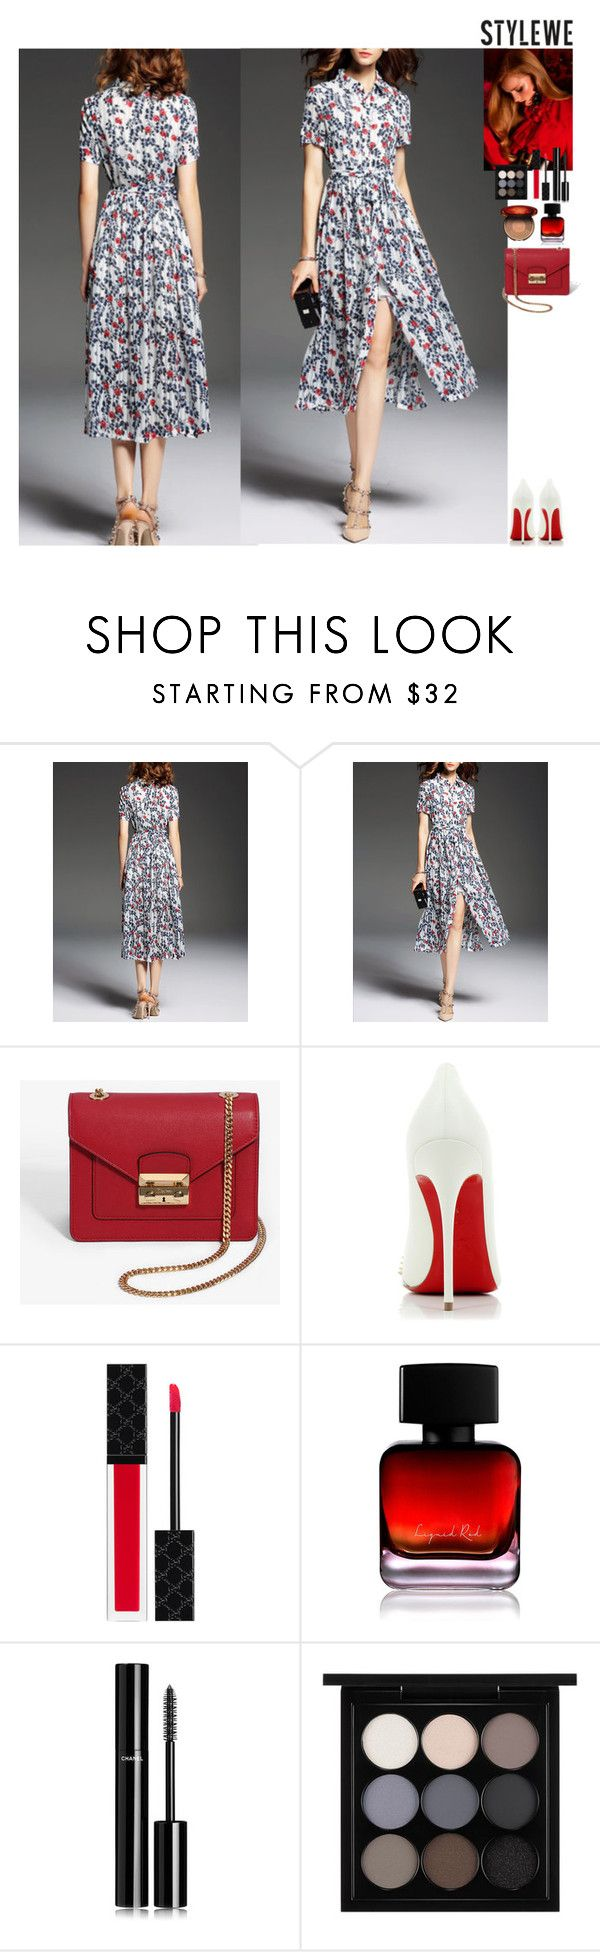 Outfit StyleWe by eliza-redkina on Polyvore featuring мода, Christian Louboutin, MAC Cosmetics, Clarins, Chanel, Gucci, The Collection by Phuong Dang, outfit, like and look